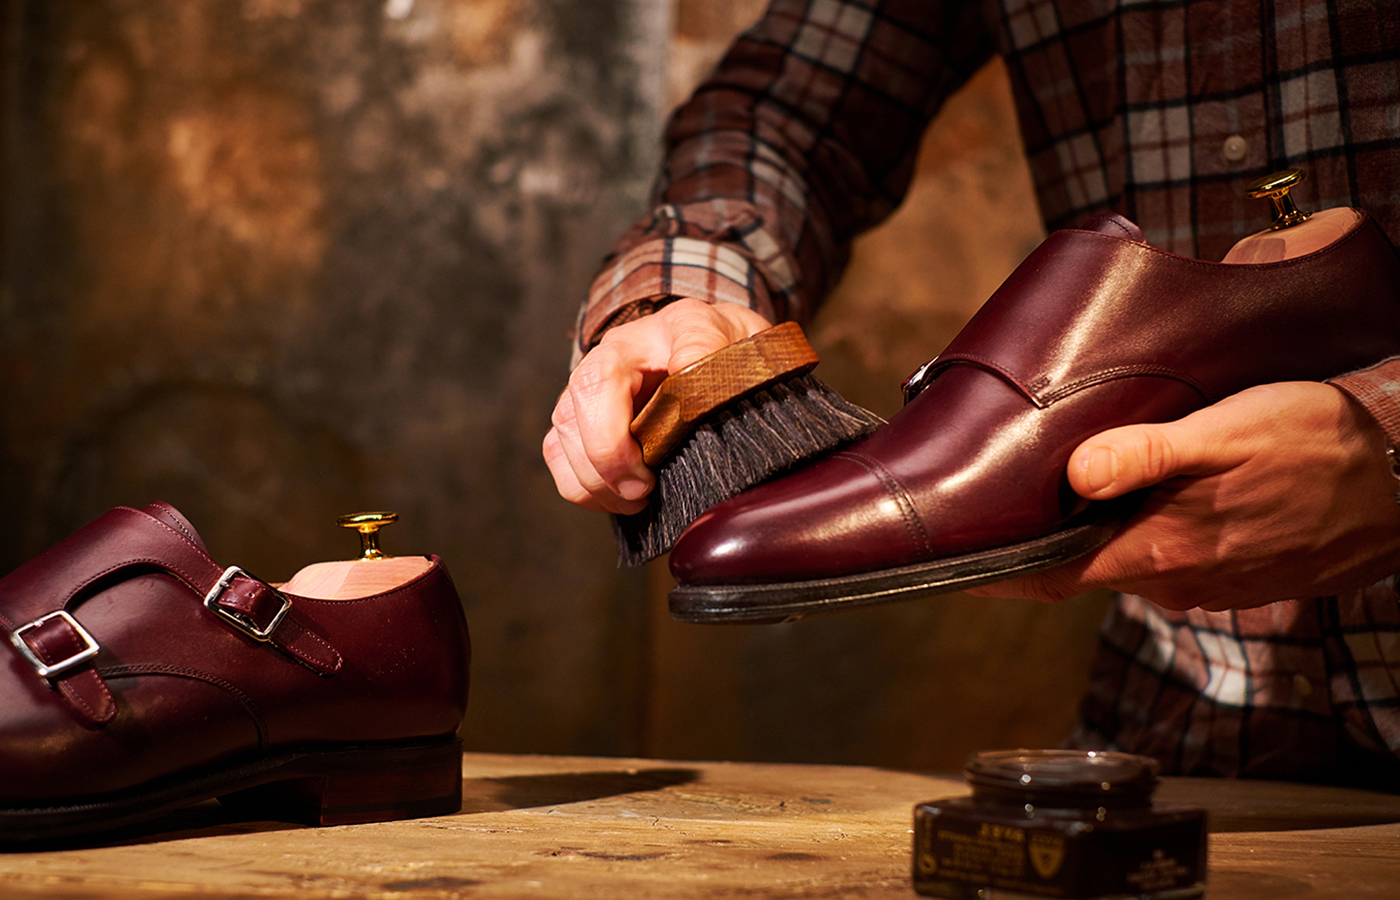 cleaning and polishing a shoe